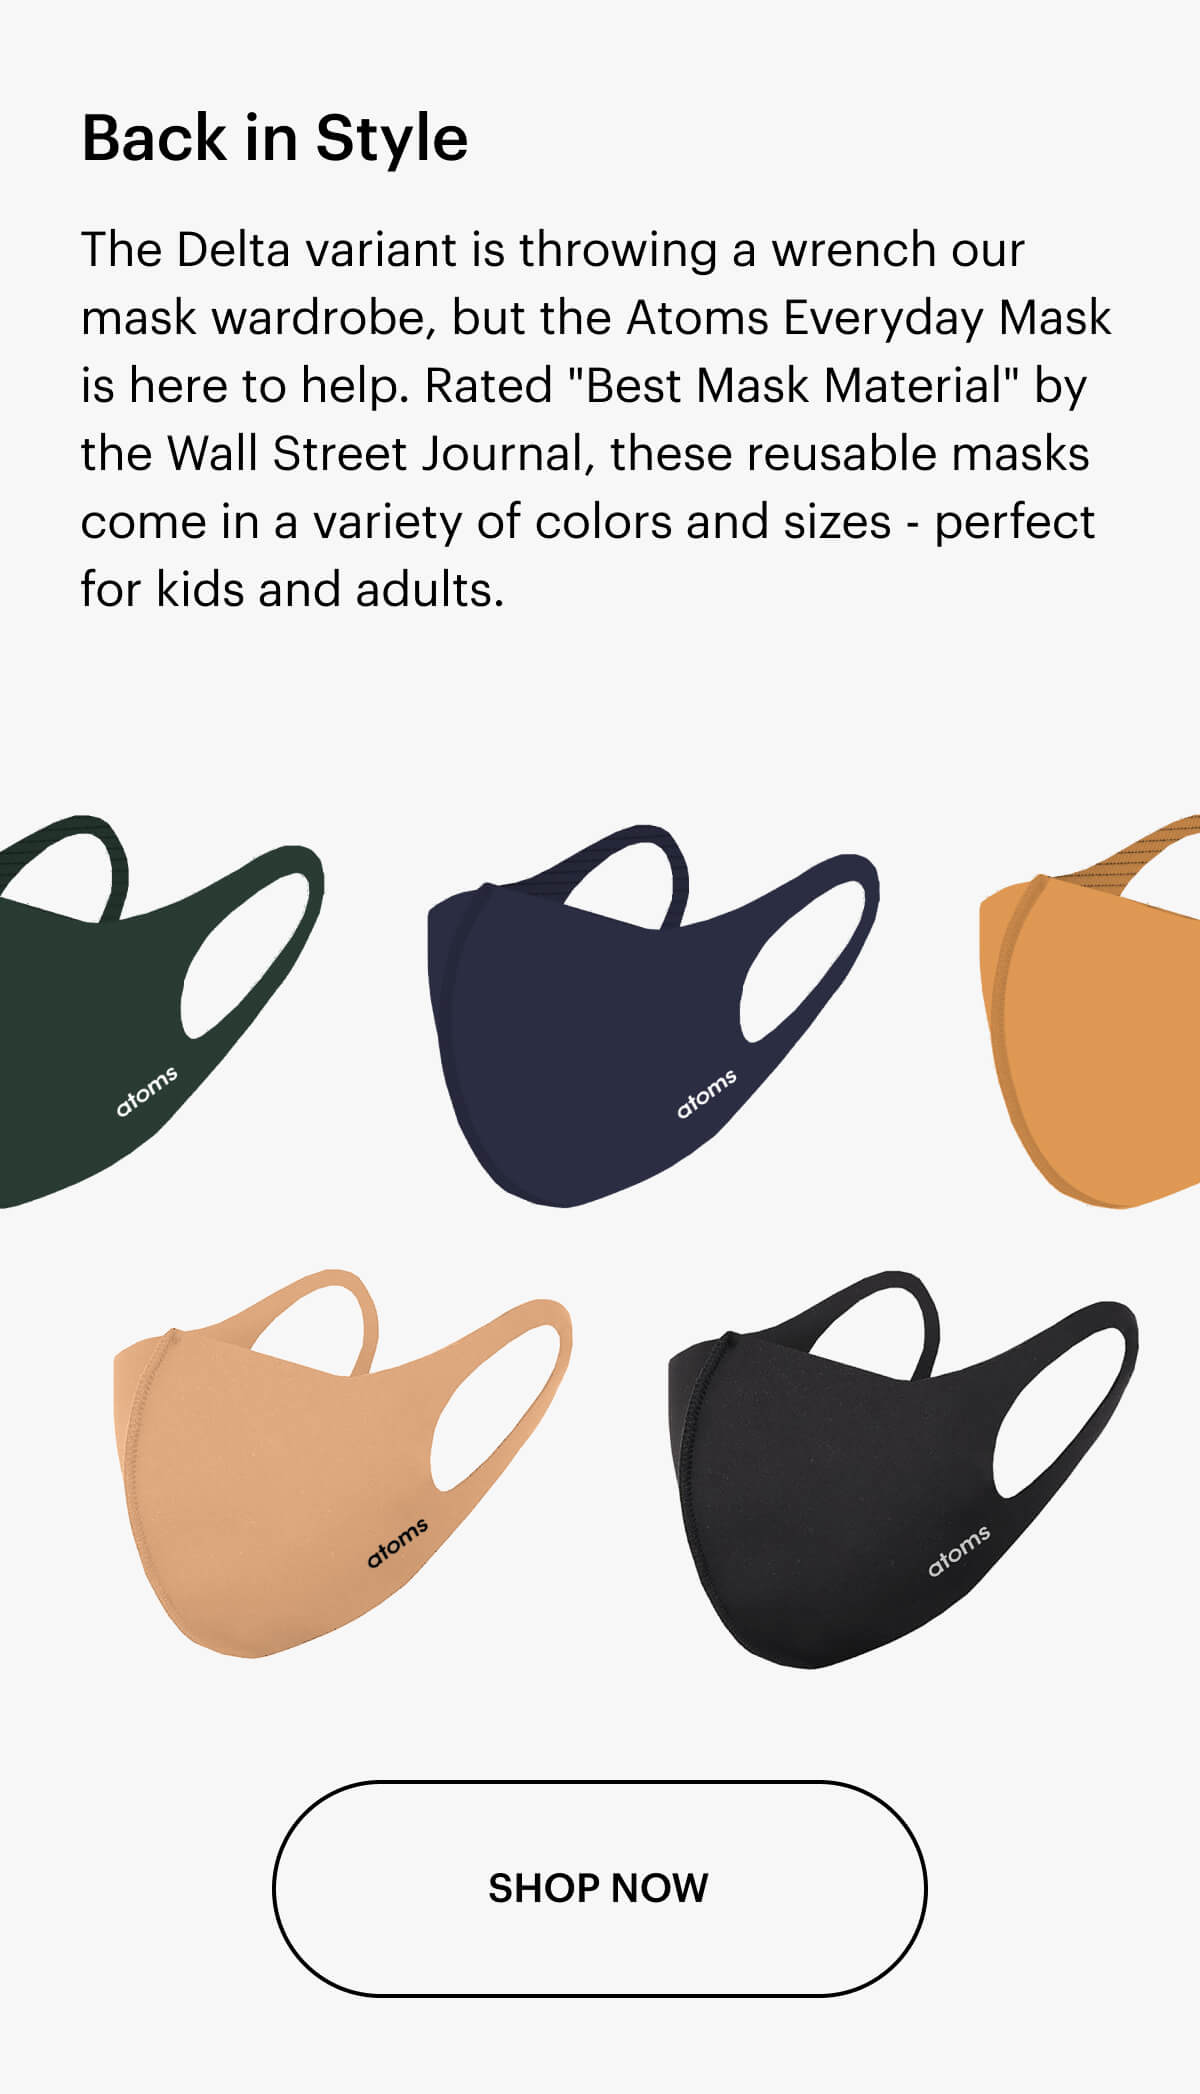 """Back in Style. The Delta variant is throwing a wrench our mask wardrobe, but the Atoms Everyday Mask is here to help. Rated """"Best Mask Material"""" by the Wall Street Journal, these reusable masks come in a variety of colors and sizes - perfect for anyone, anywhere."""